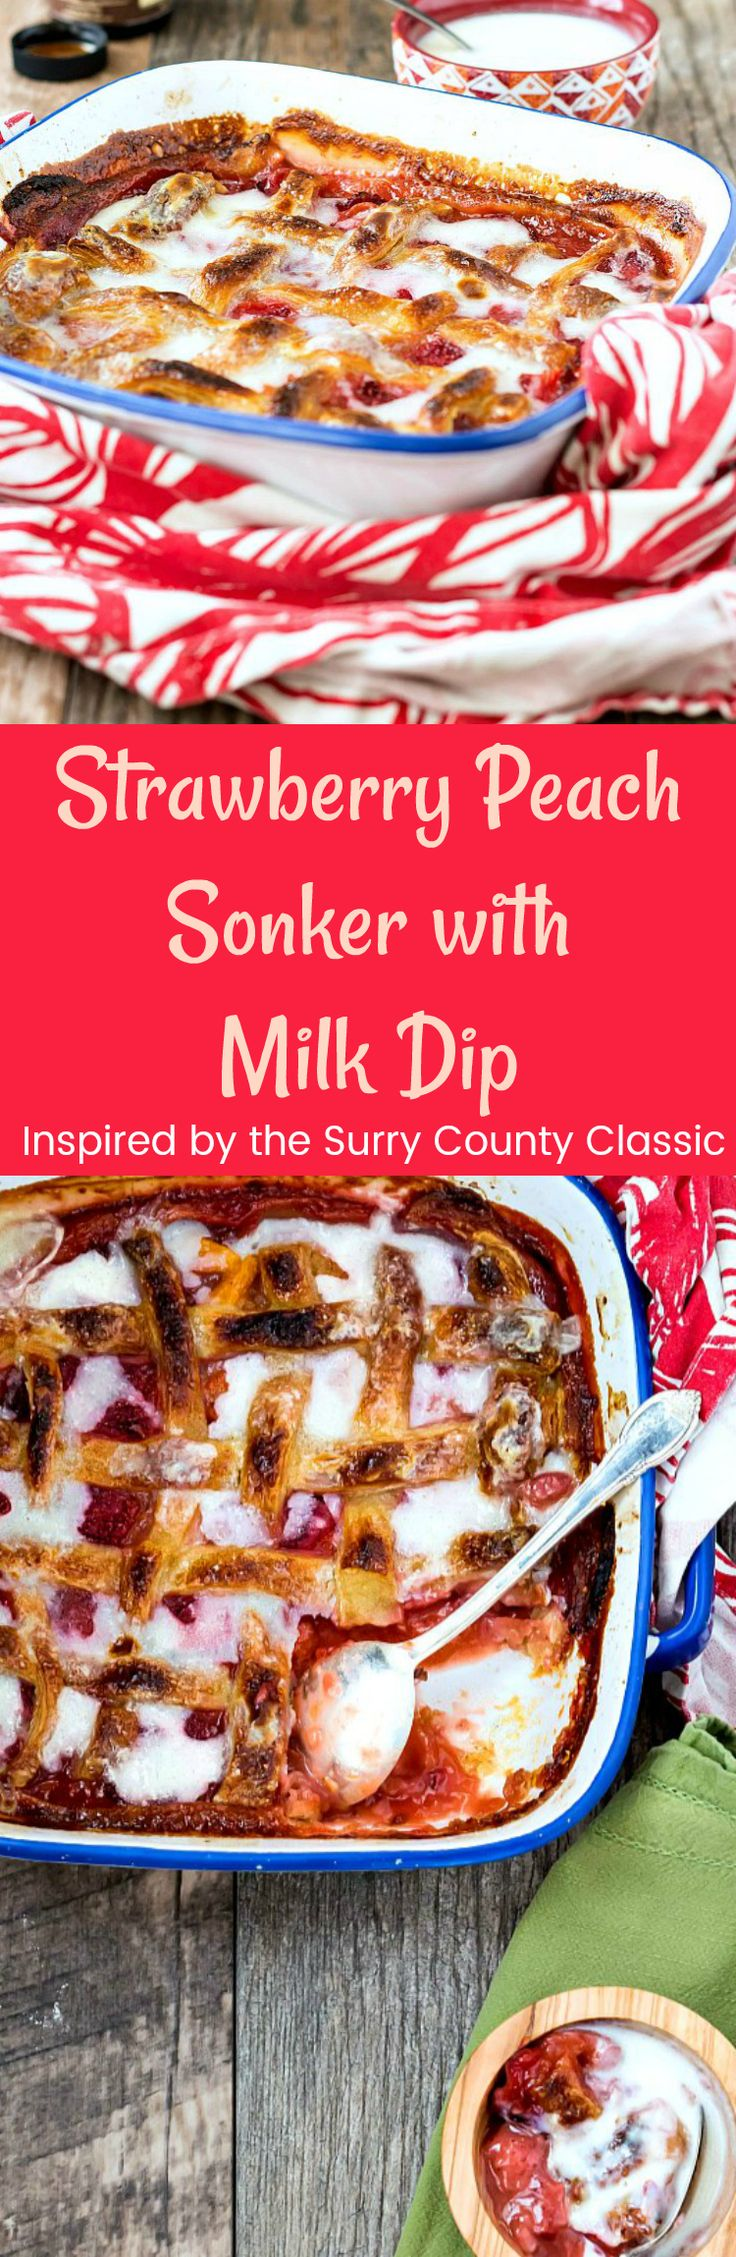 Strawberry Peach Sonker with Milk Dip is a dessert native to Surry and ...